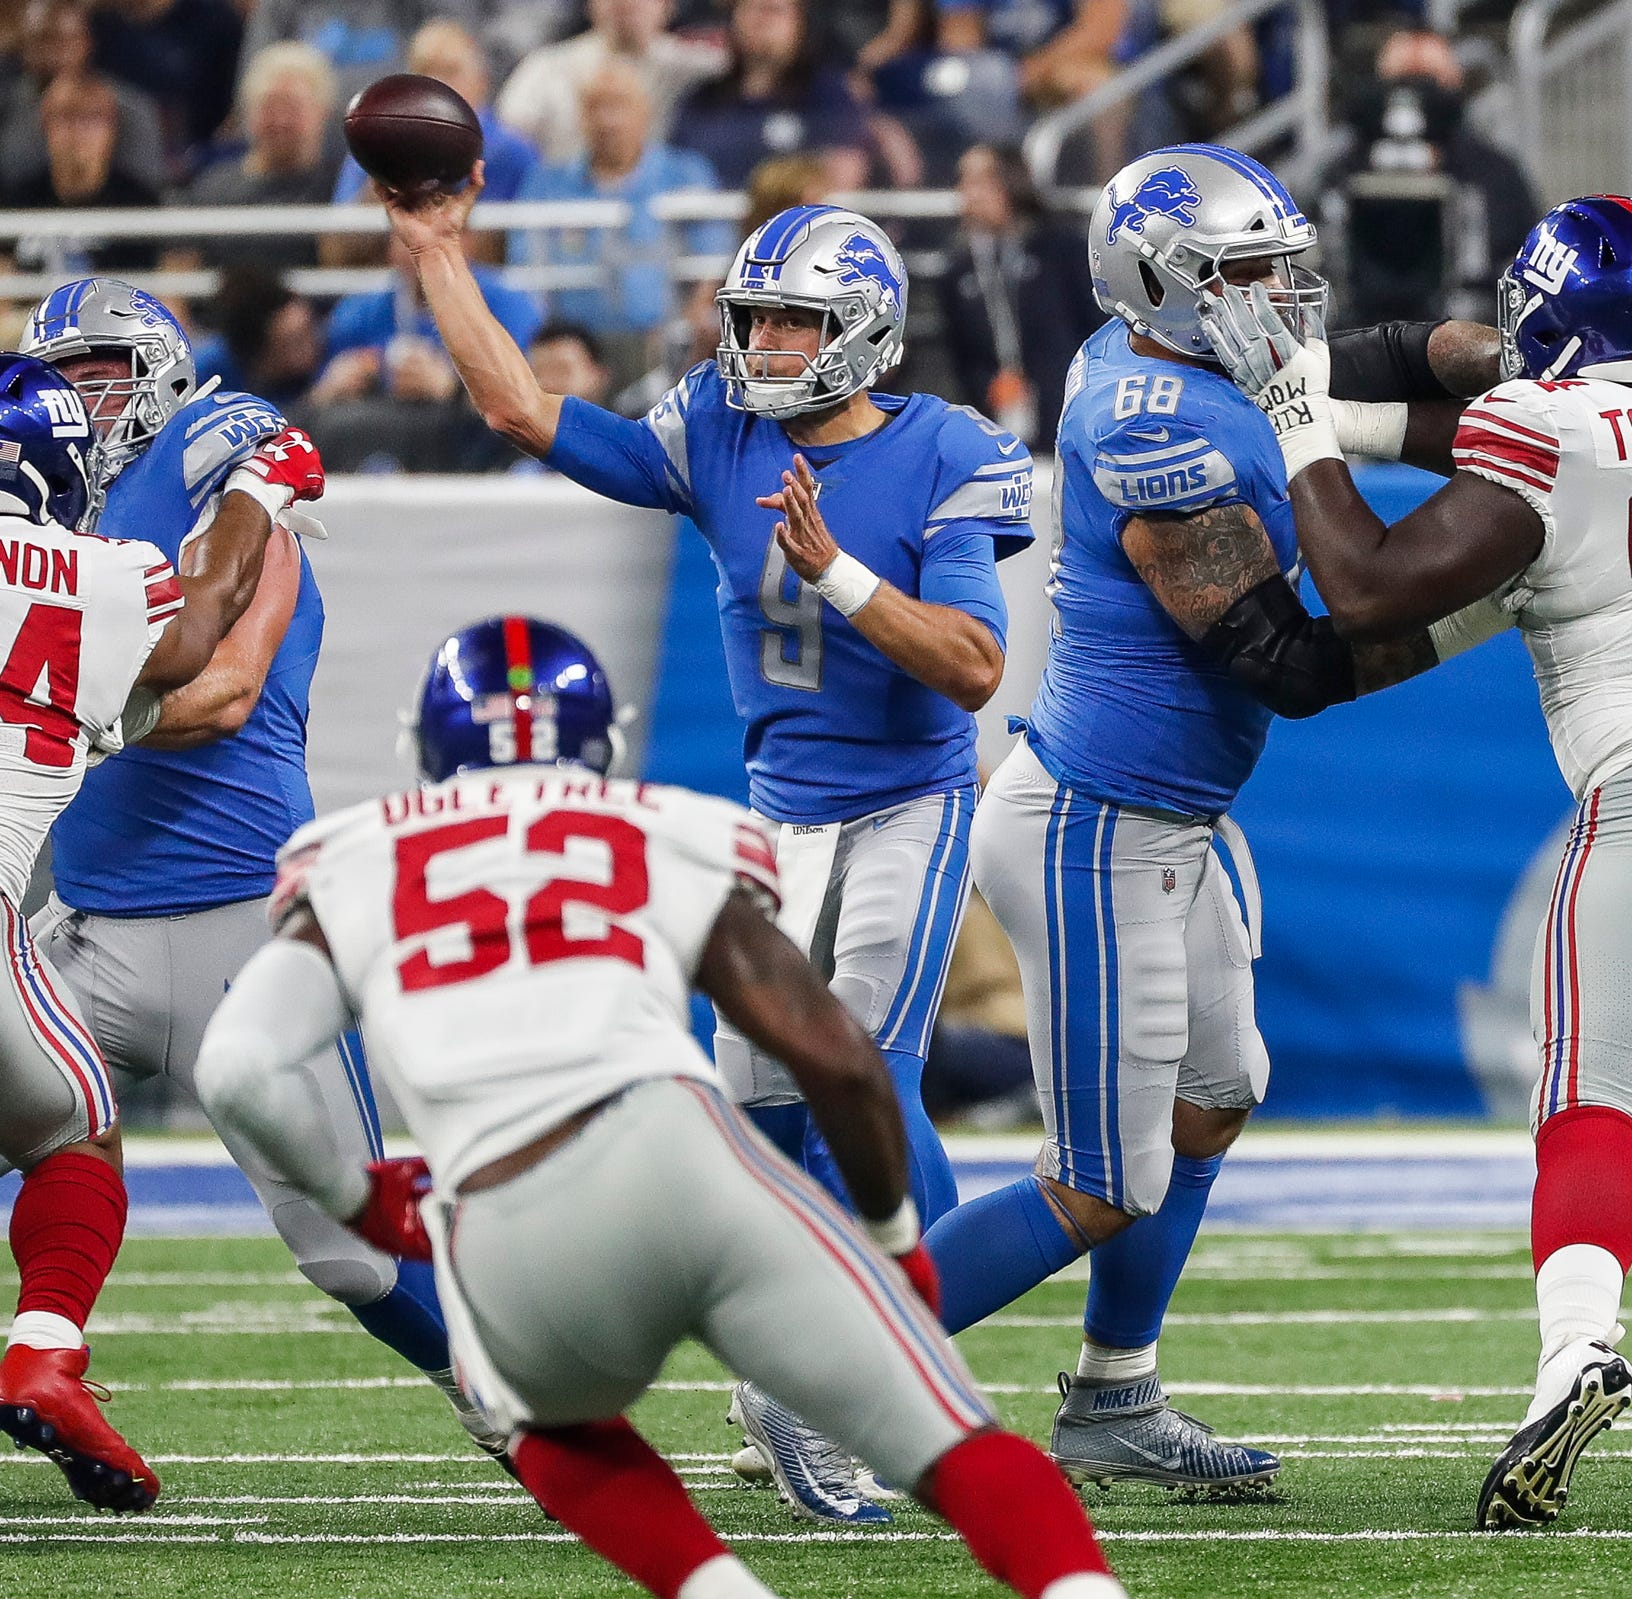 Detroit Lions-N.Y. Giants observations: Kenny Golladay No. 2 receiver